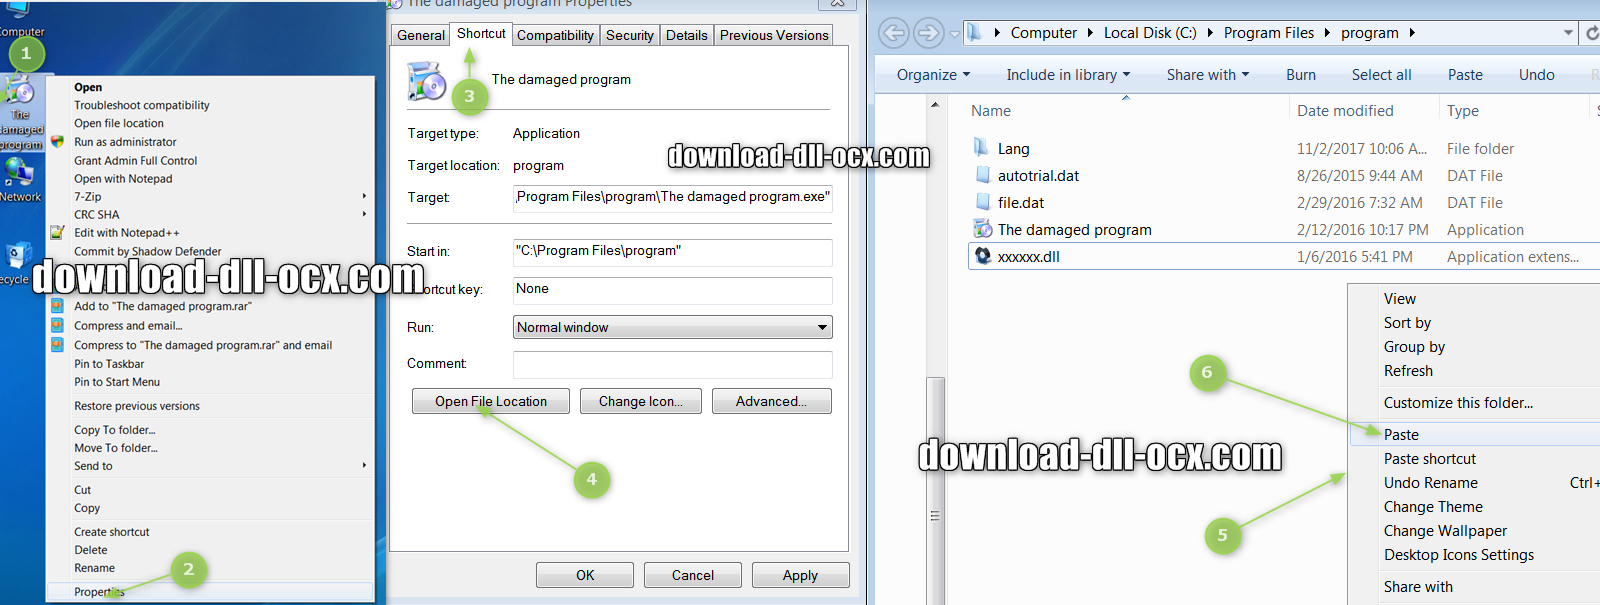 how to install Luaconfig.dll file? for fix missing